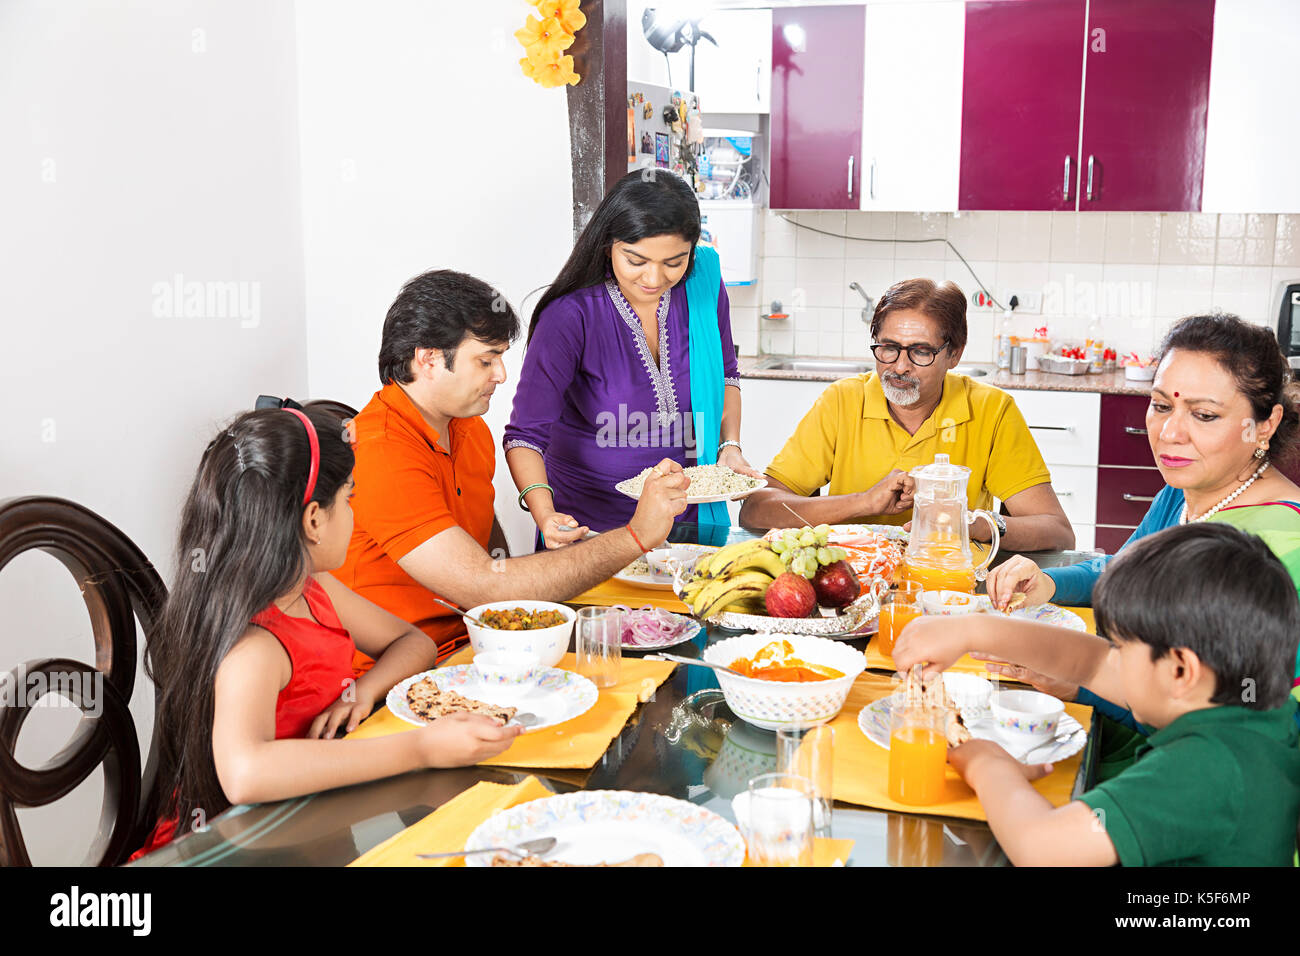 Big Family Dining Table Eating Cuisine Food Dinner Dining Room